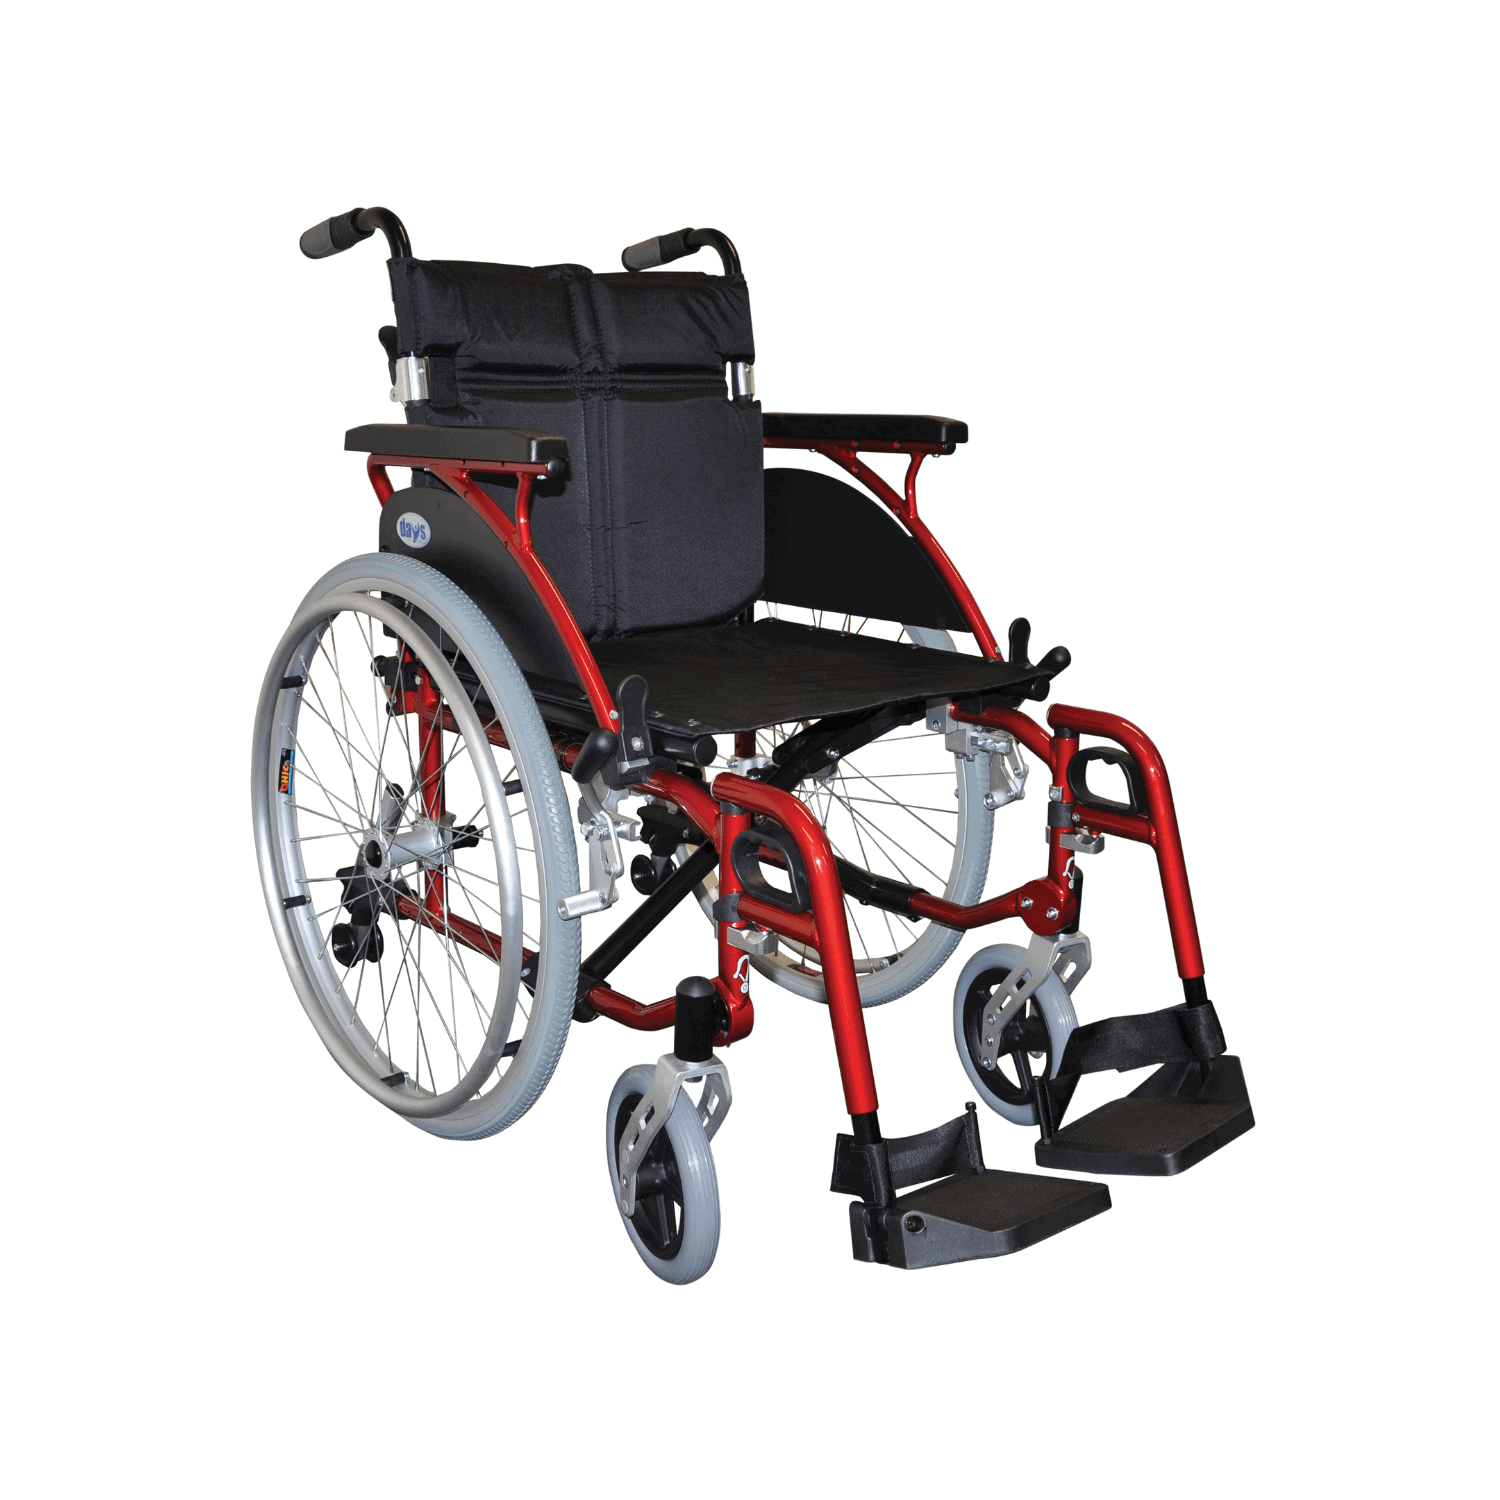 Days Premium Link Wheelchair Self-propelled 16, 18, 20 And 22 – Red